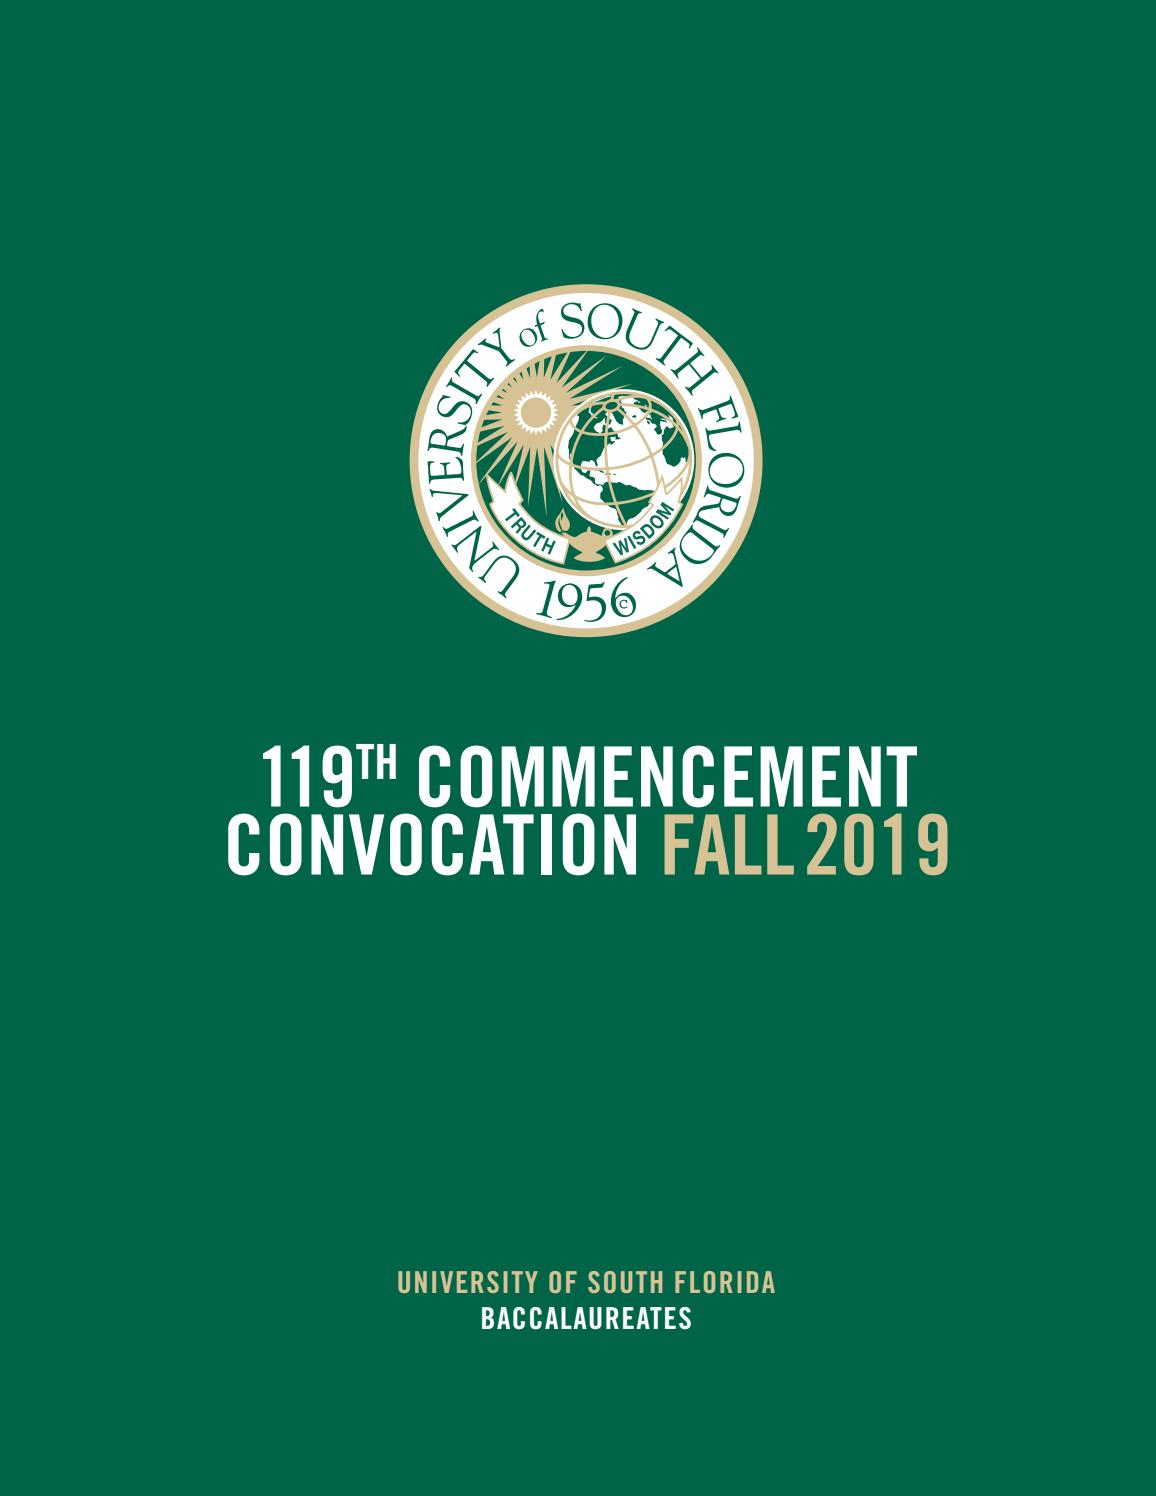 Fall 2019 Usf Tampa Undergraduate Commencement Program With University Of South Florida Academic Calendar Downloadable